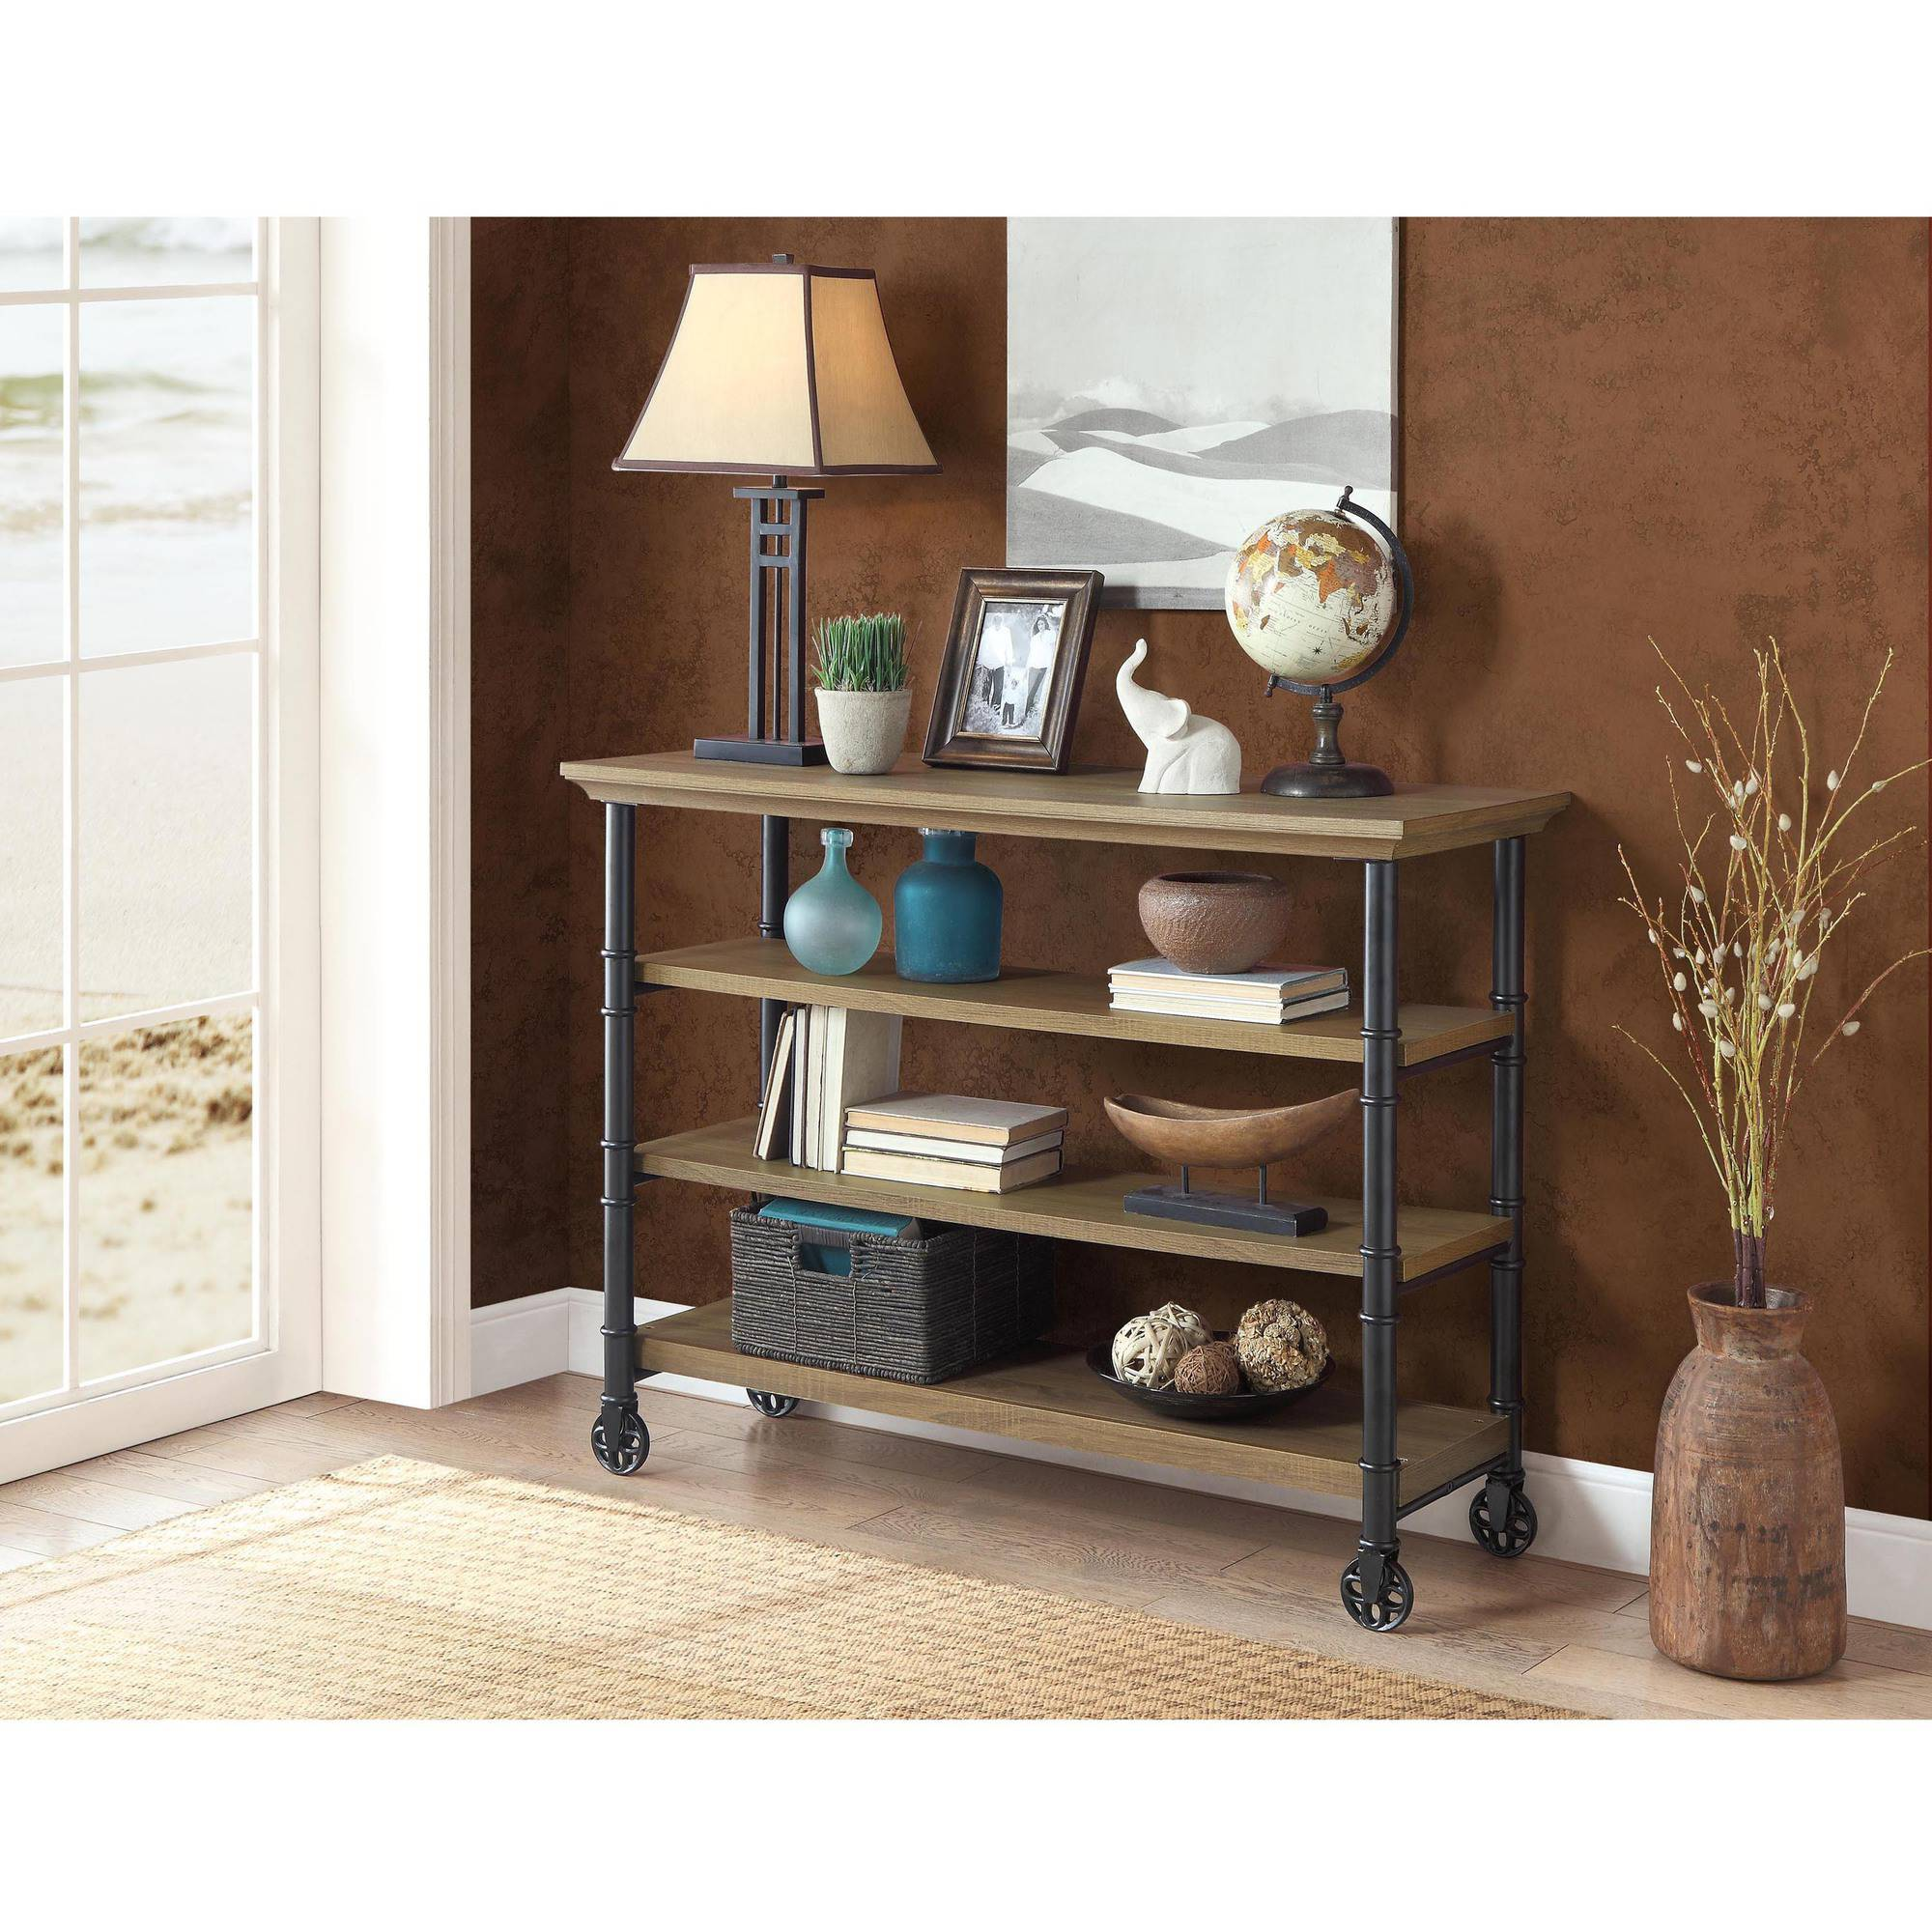 Small Wine Stand Whalen Santa Fe Portable Kitchen Cart With Wine Rack Rustic Brown